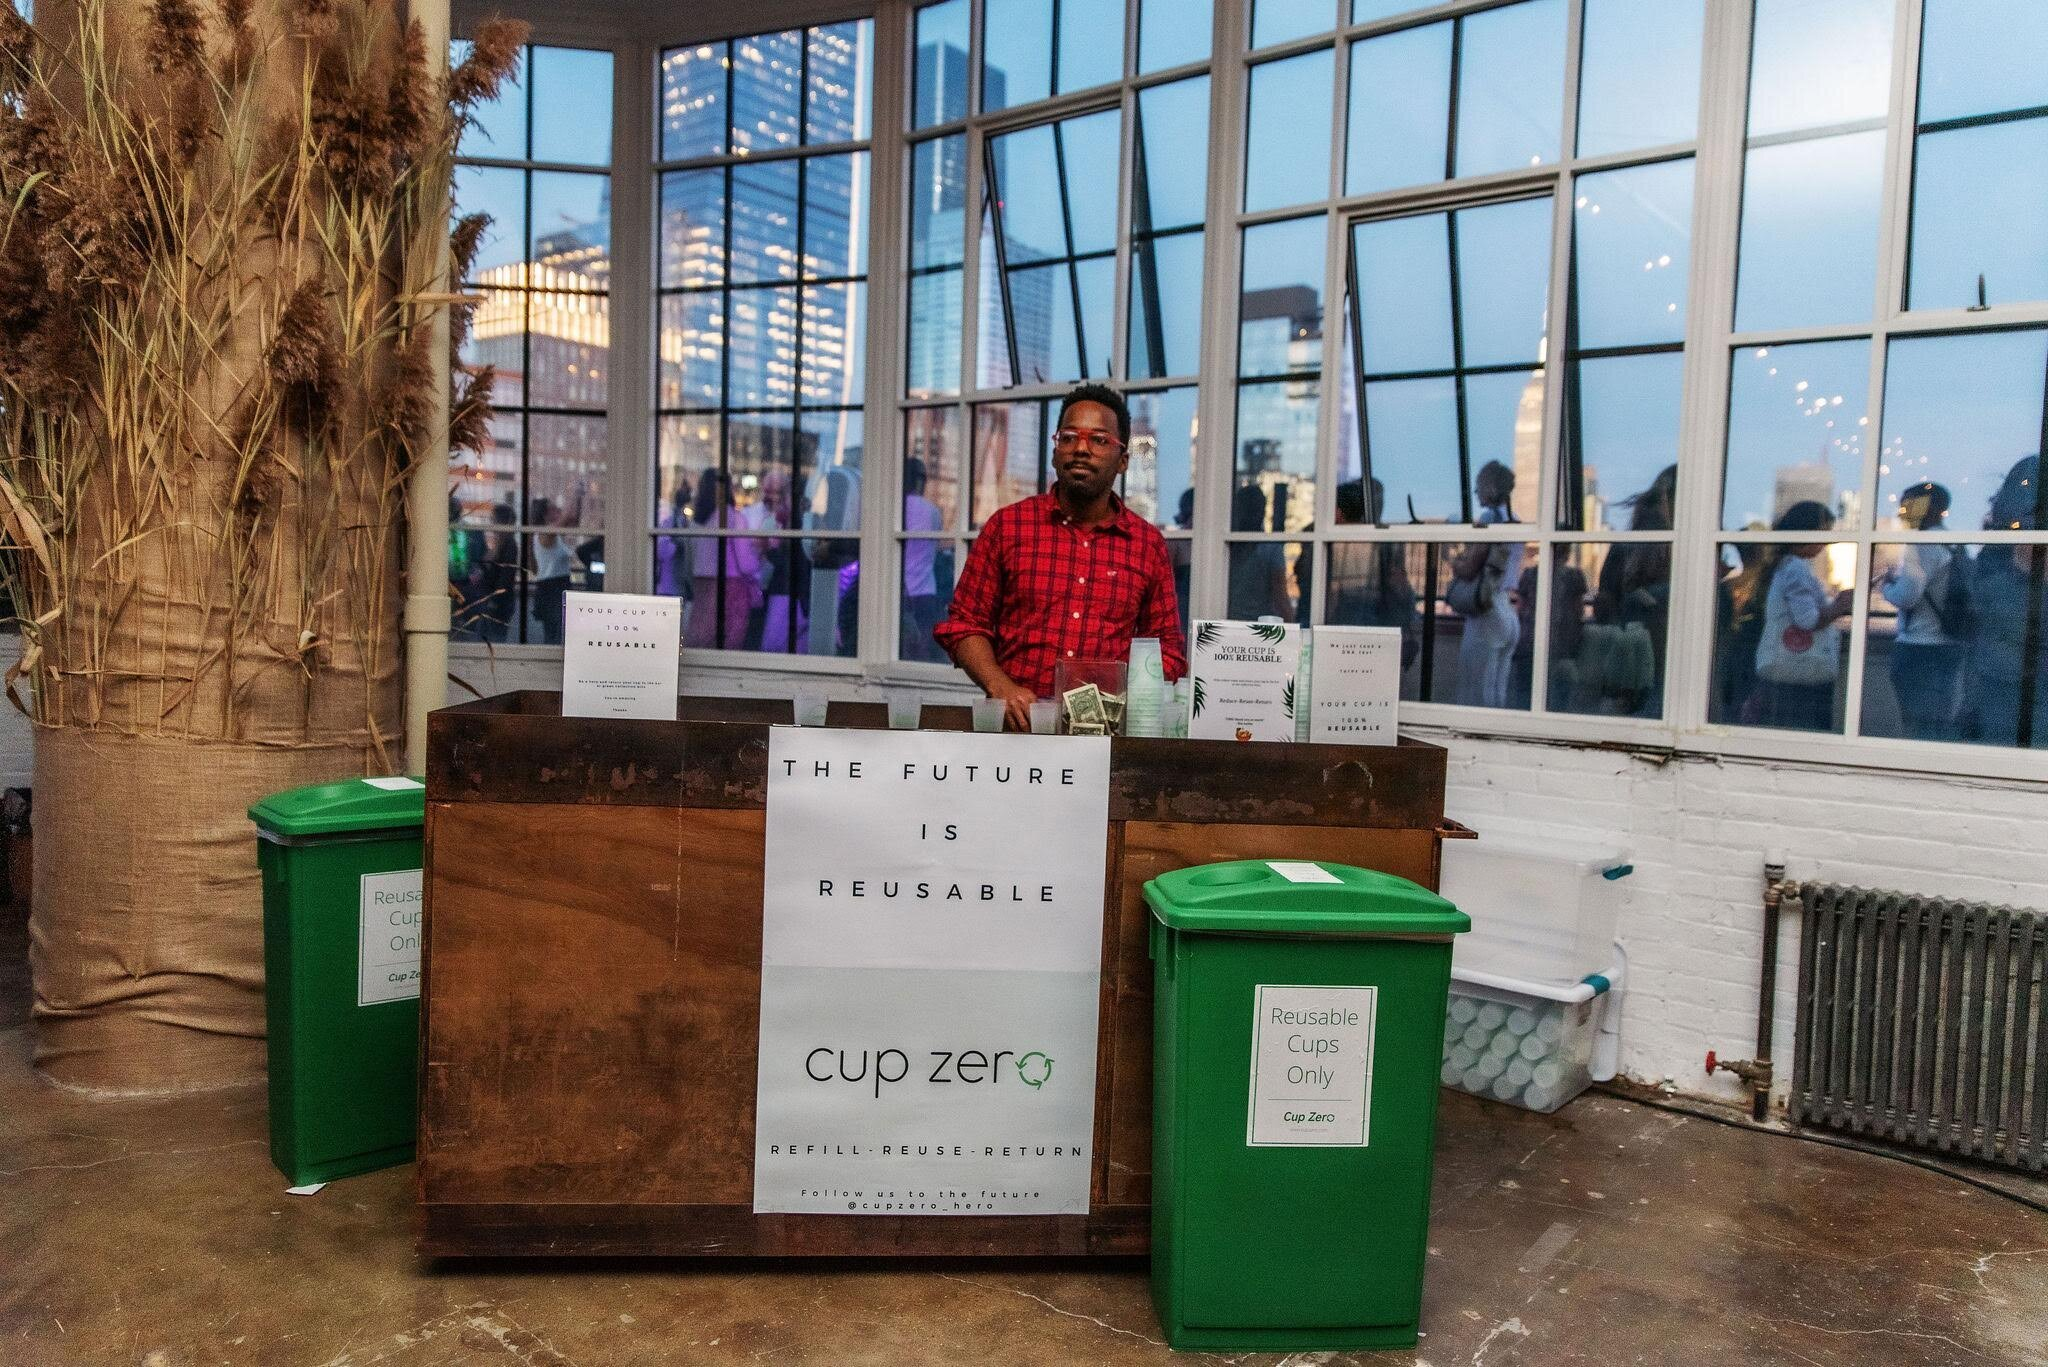 With logistics, collection points, and washing included, going zero waste has never been easier. -